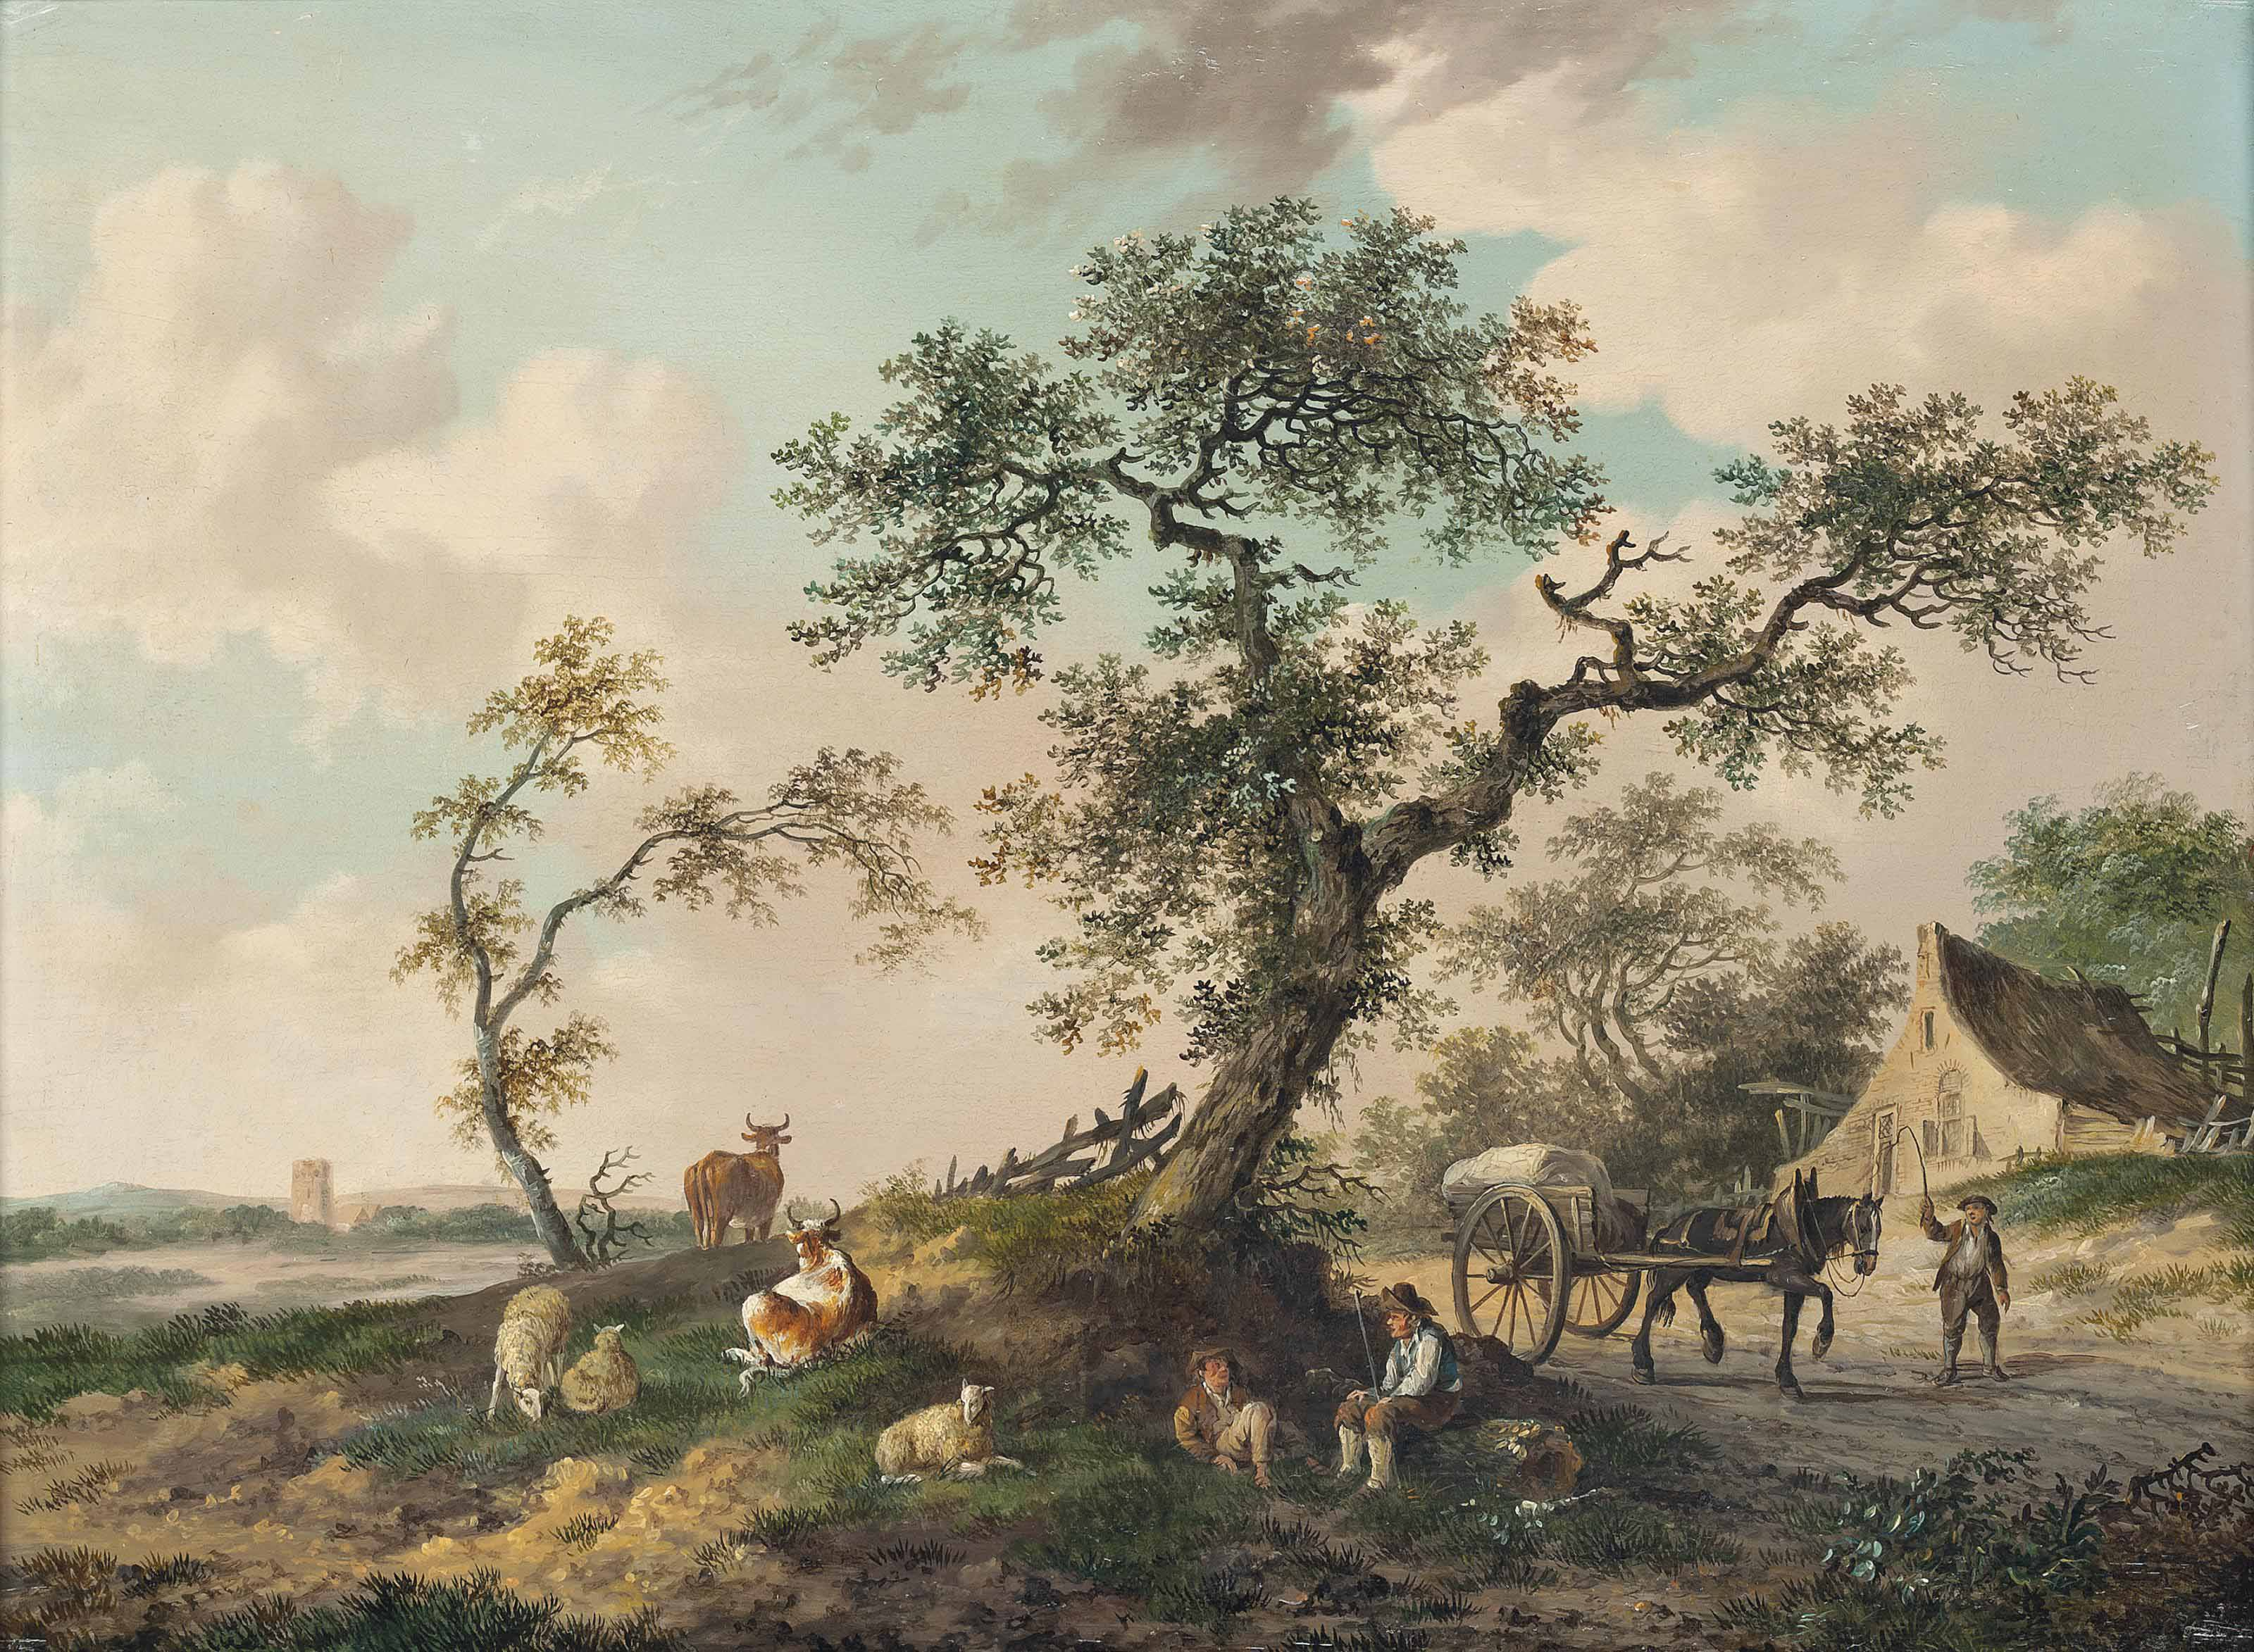 A wooded landscape with drovers and their herds of cows and sheep, a horse-drawn cart before a cottage, a town beyond